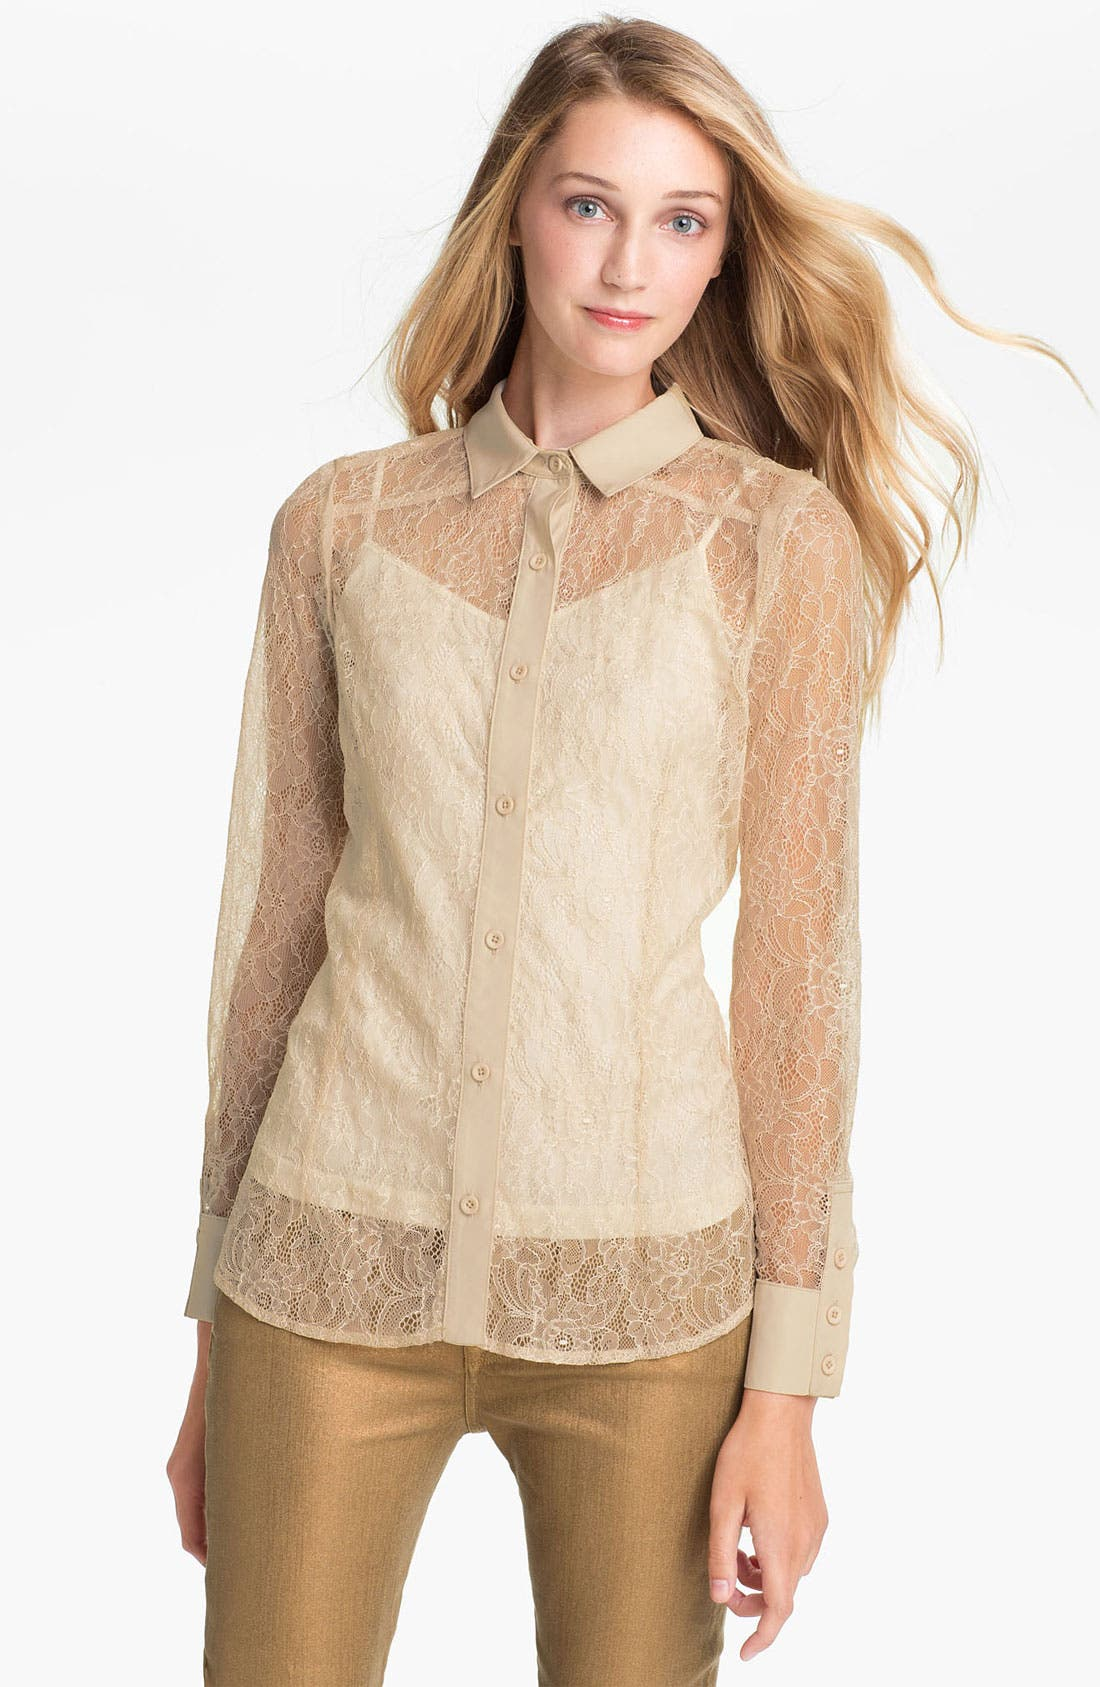 Alternate Image 1 Selected - Max & Mia Sheer Lace Blouse